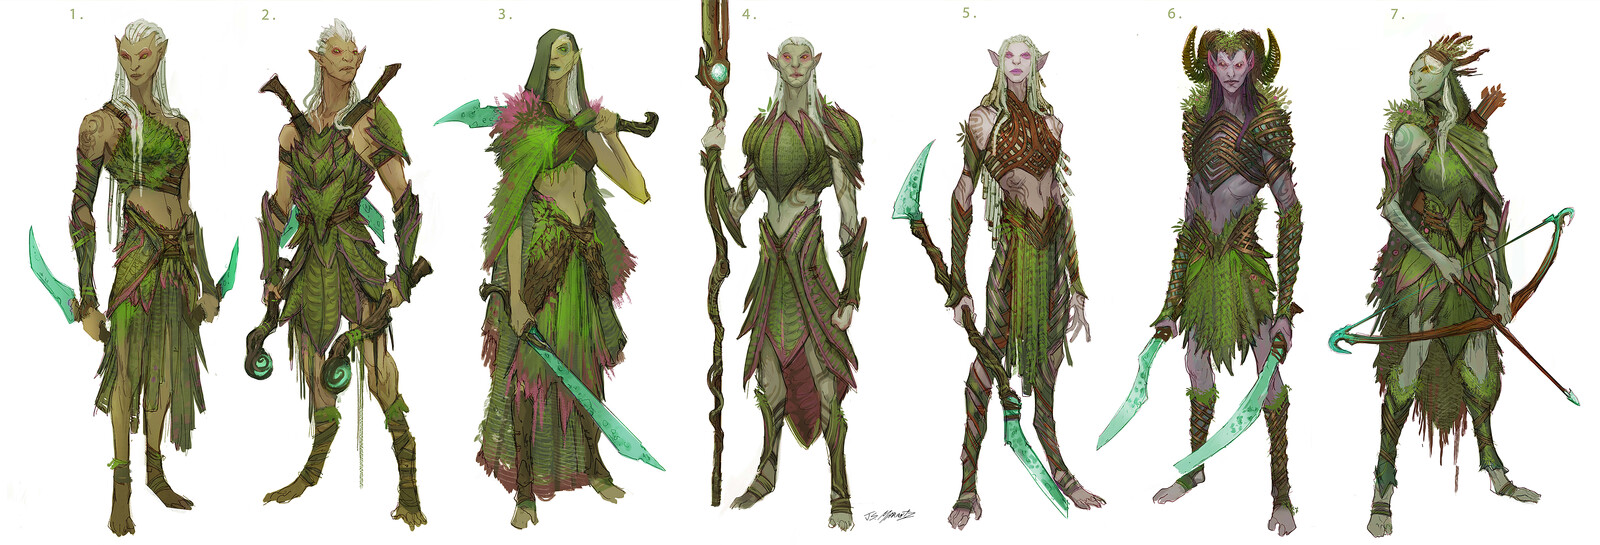 Elf Designs for Canceled Game